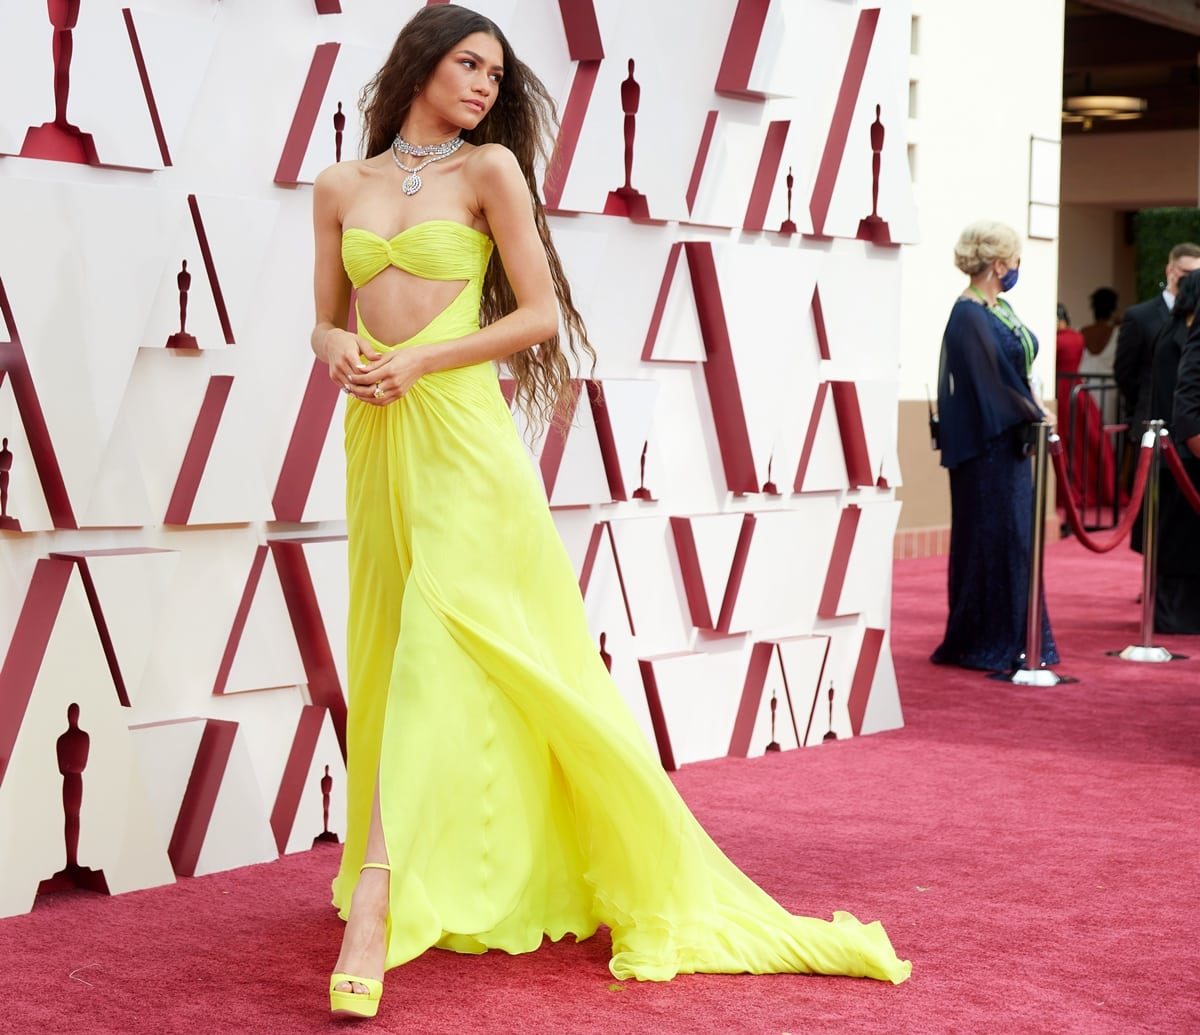 Zendaya wore a bright yellow strapless gown that glows in the dark